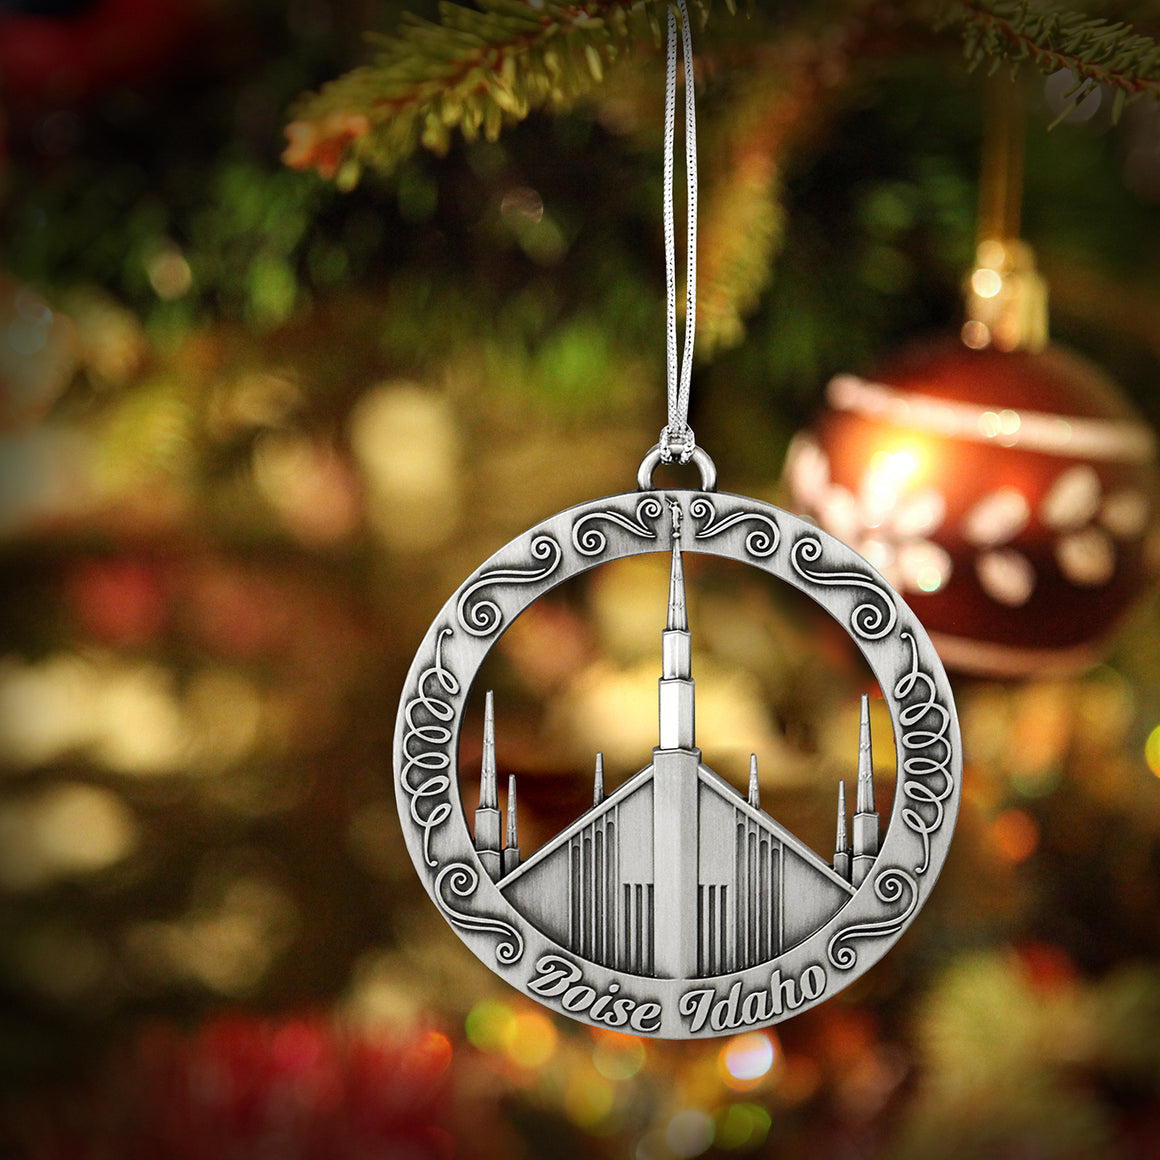 Boise Idaho Temple Ornament